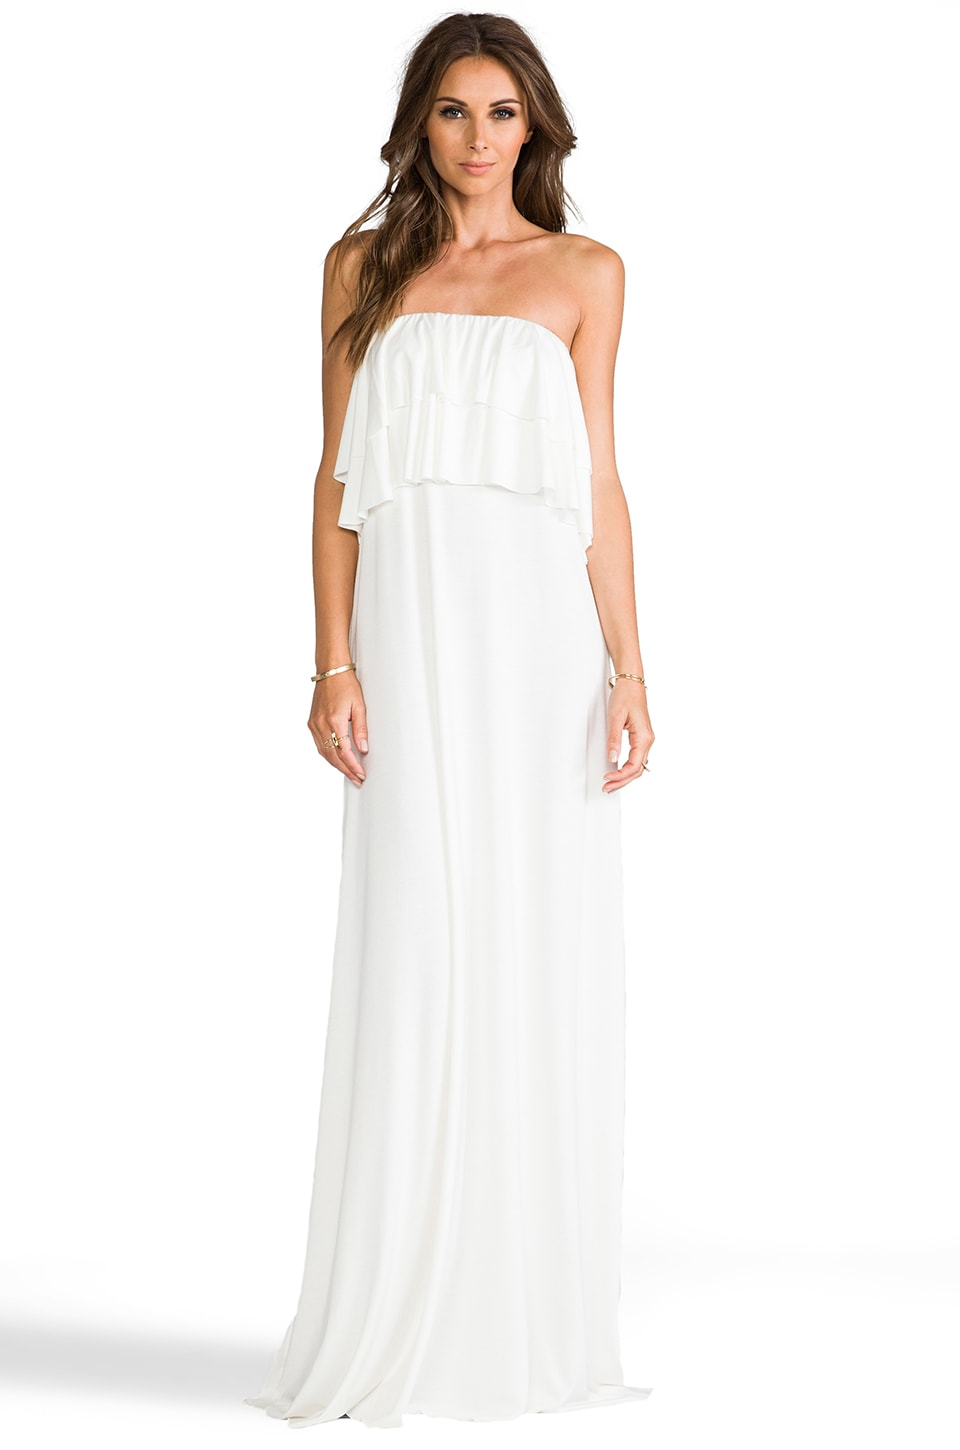 Rachel Pally Abel Dress in White